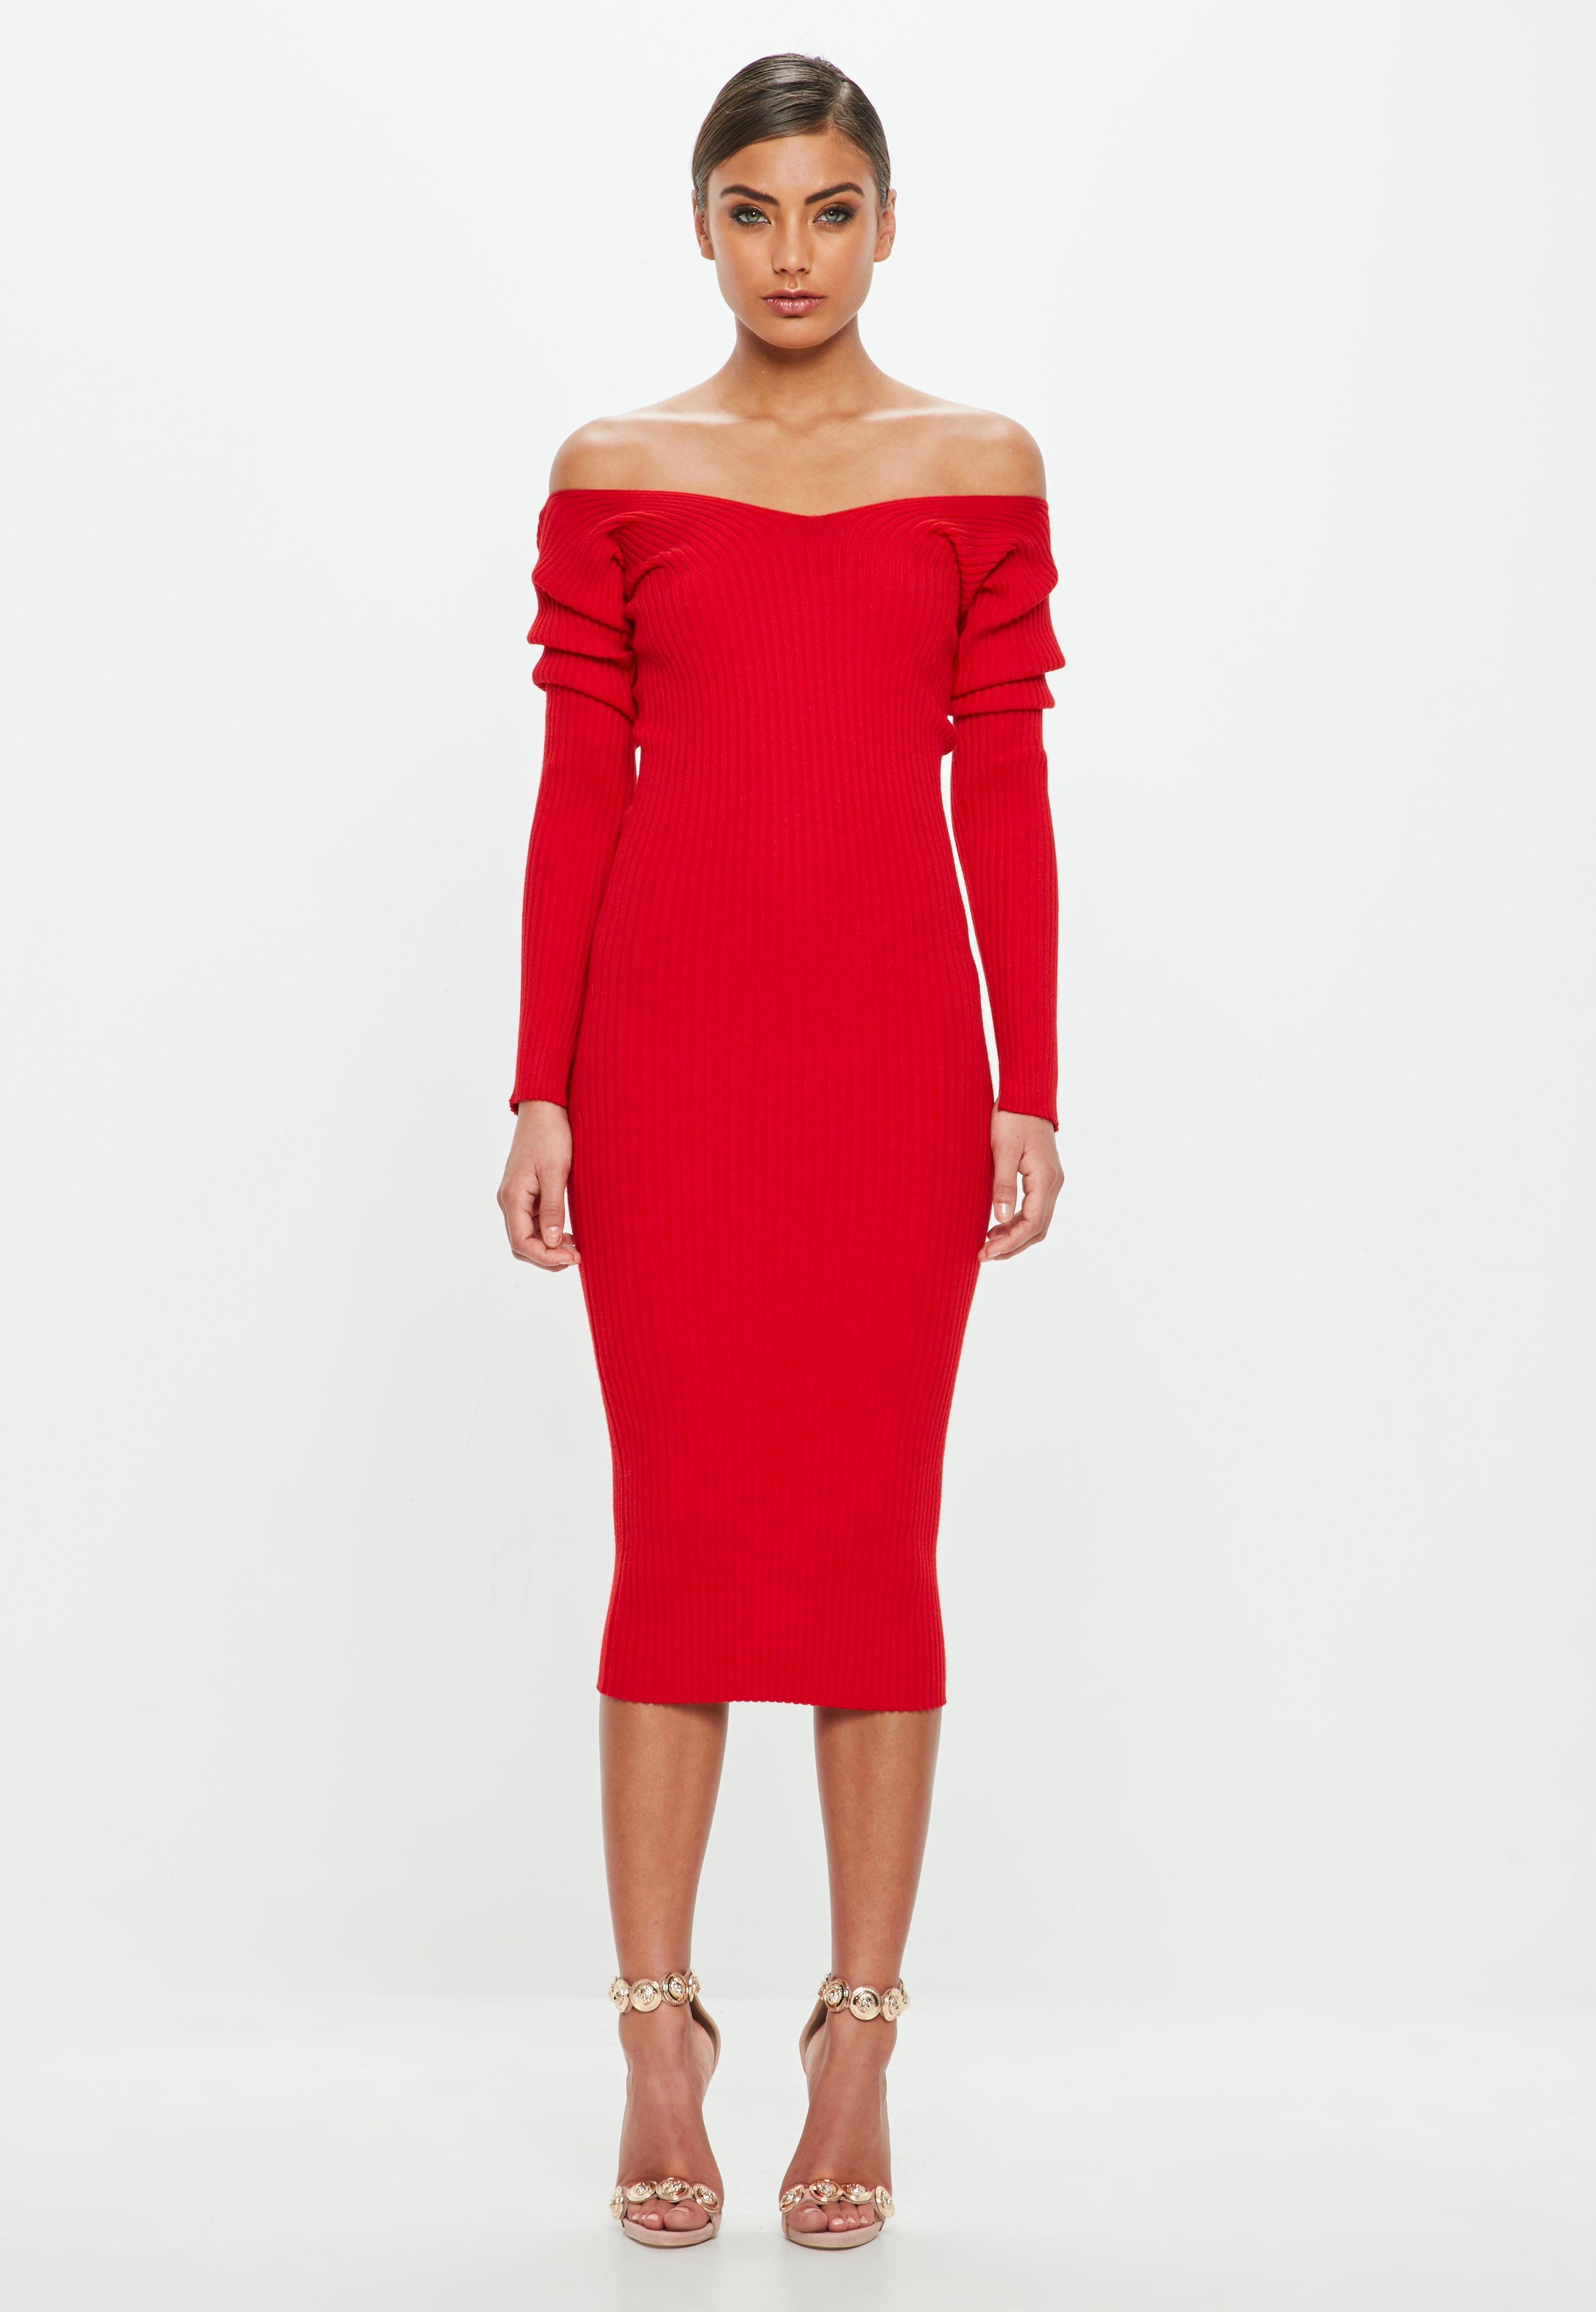 7945ded2d9a Lyst - Missguided Peace + Love Red Off The Shoulder Midi Dress in Red